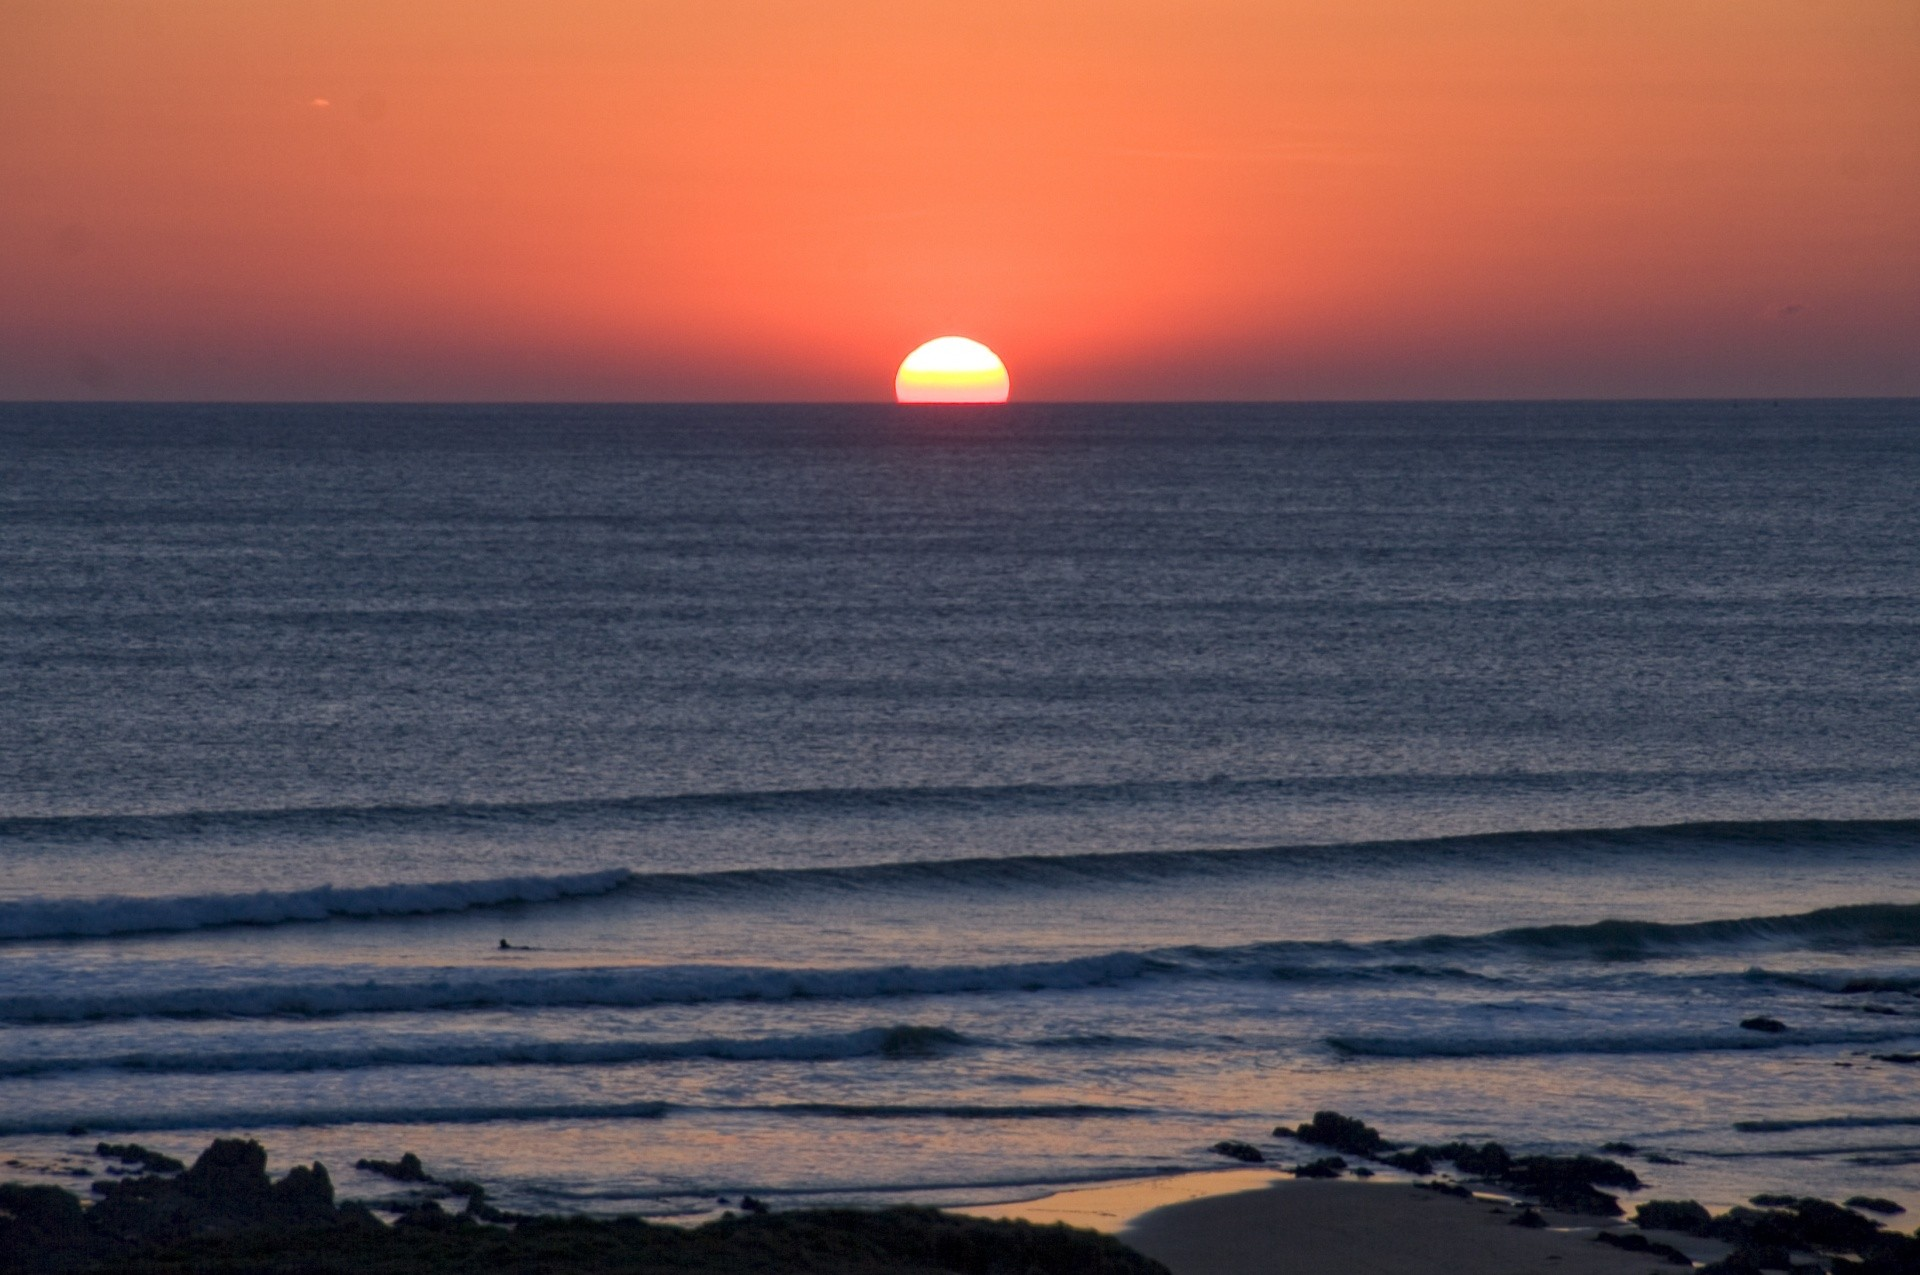 daisy's photo of Freshwater West